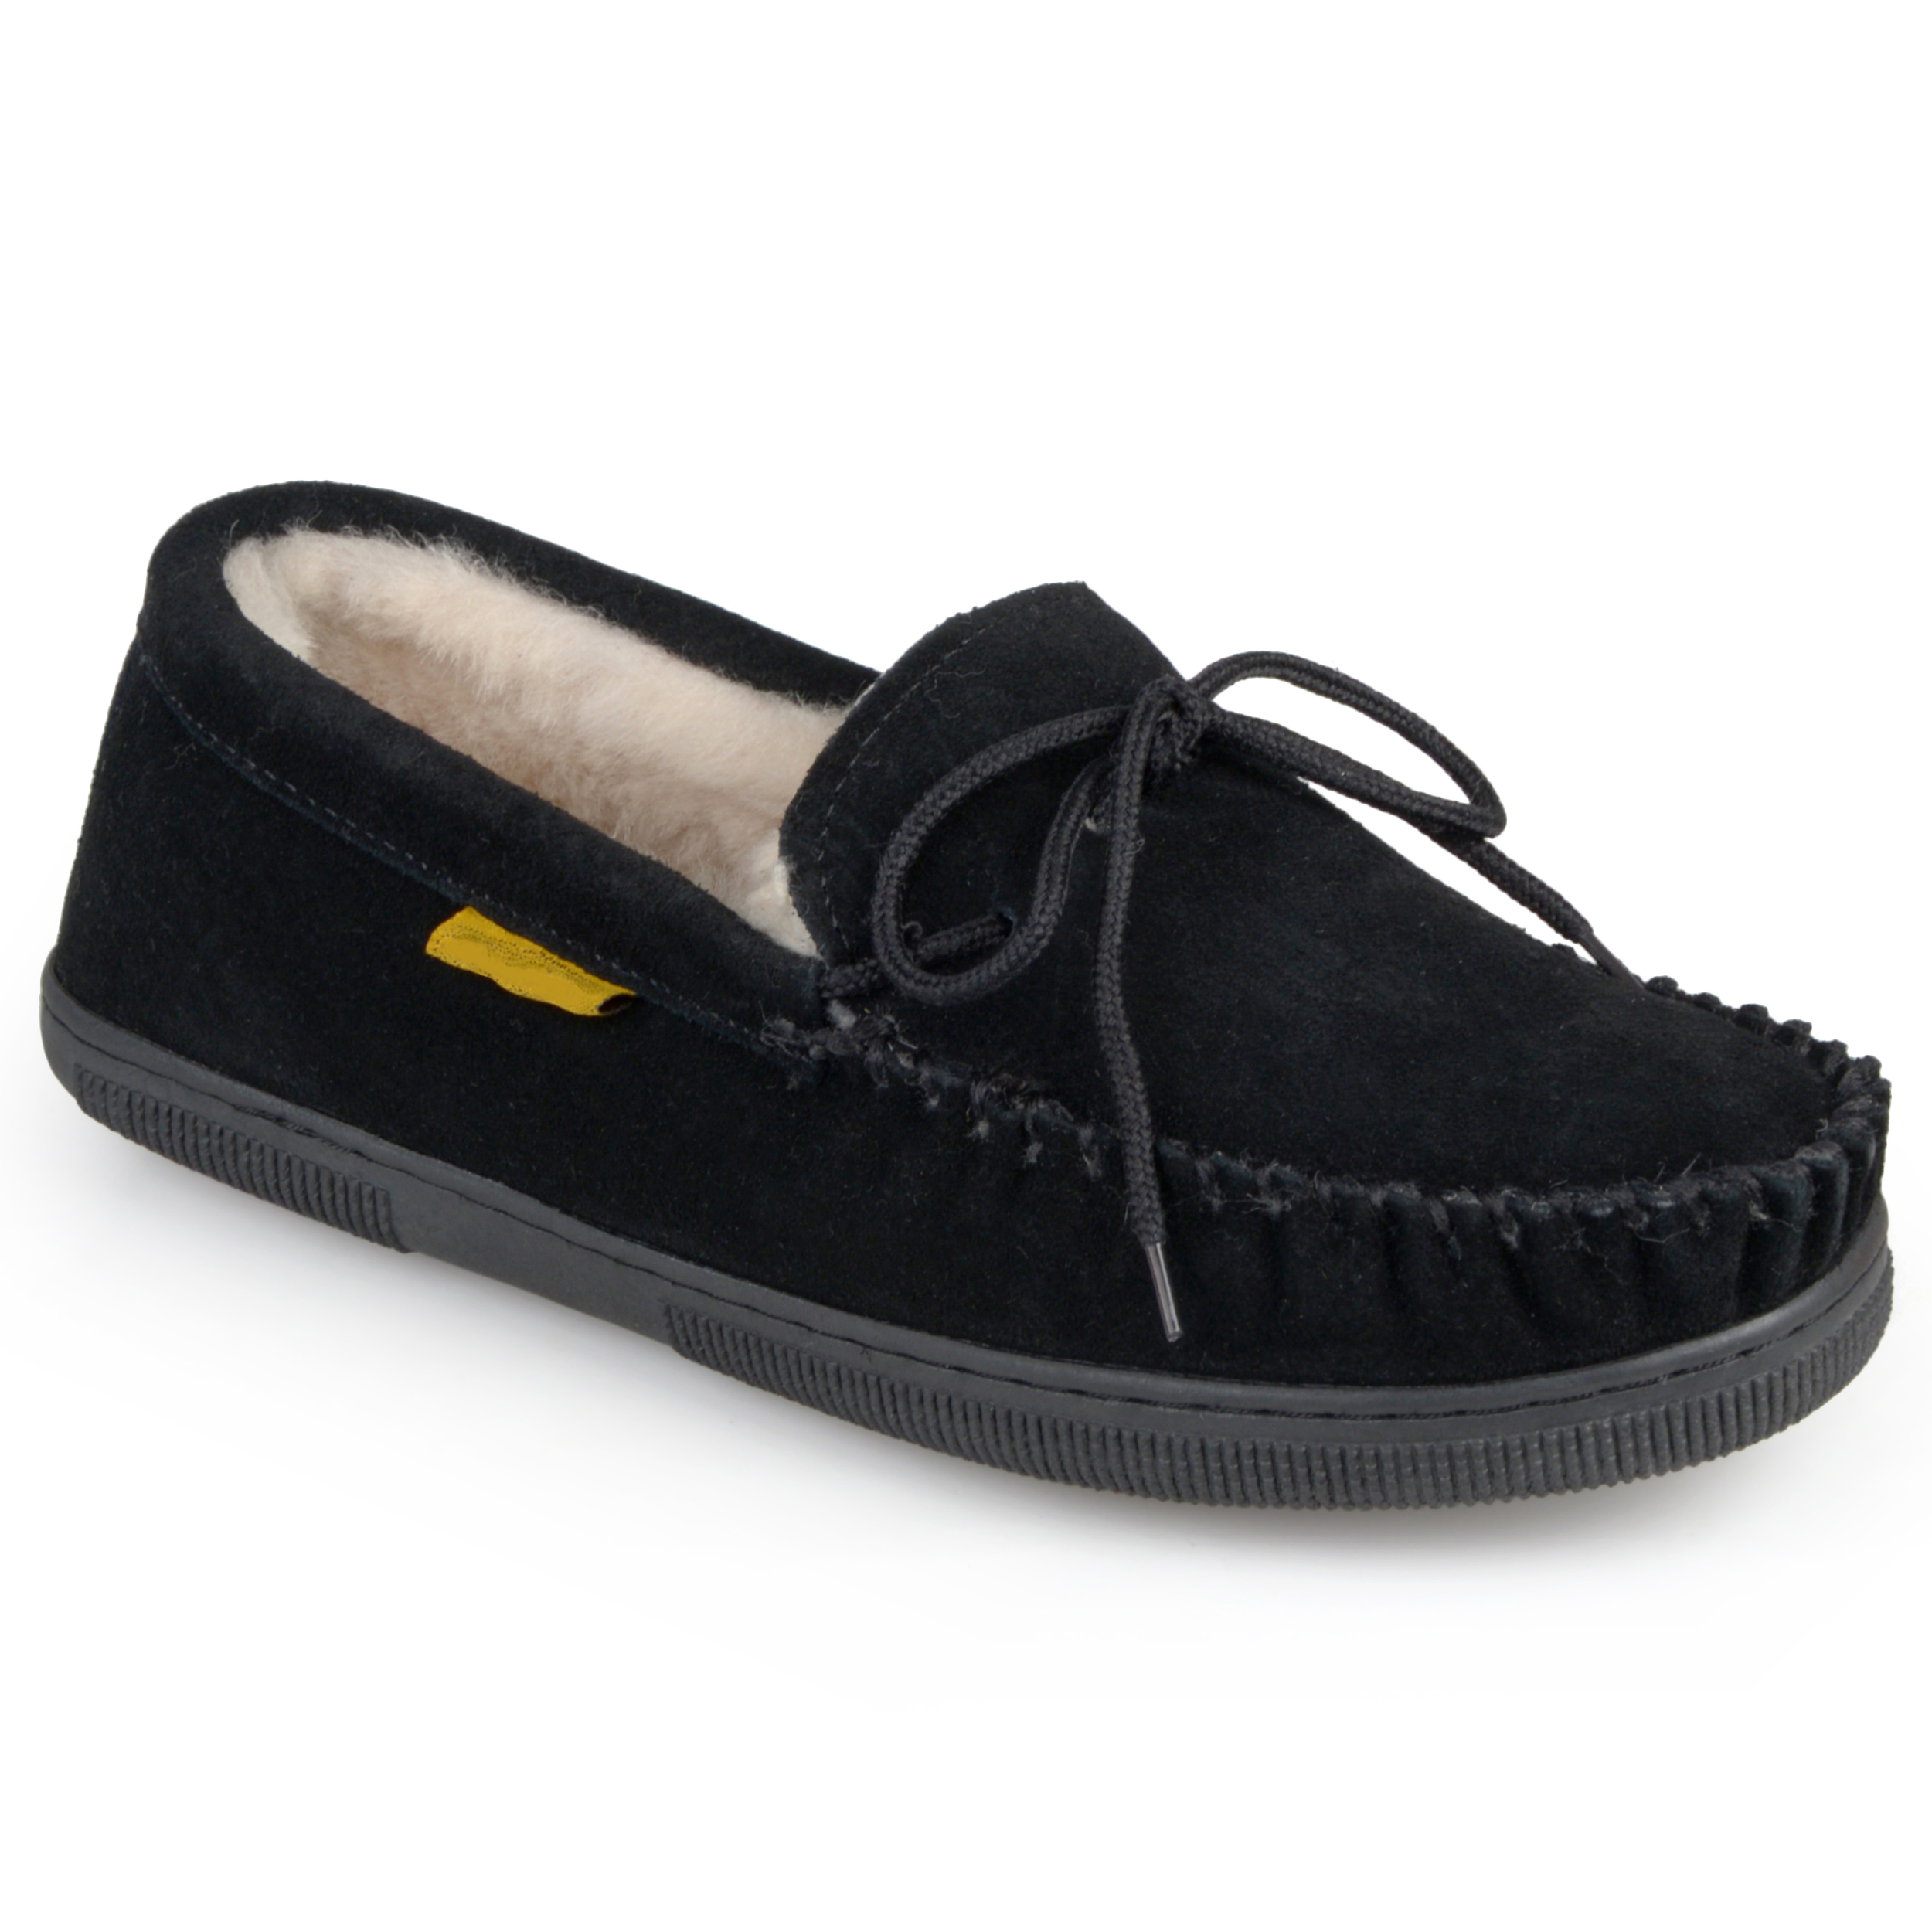 Pindari Mens Moccasin Sheepskin Slipper at Sears.com